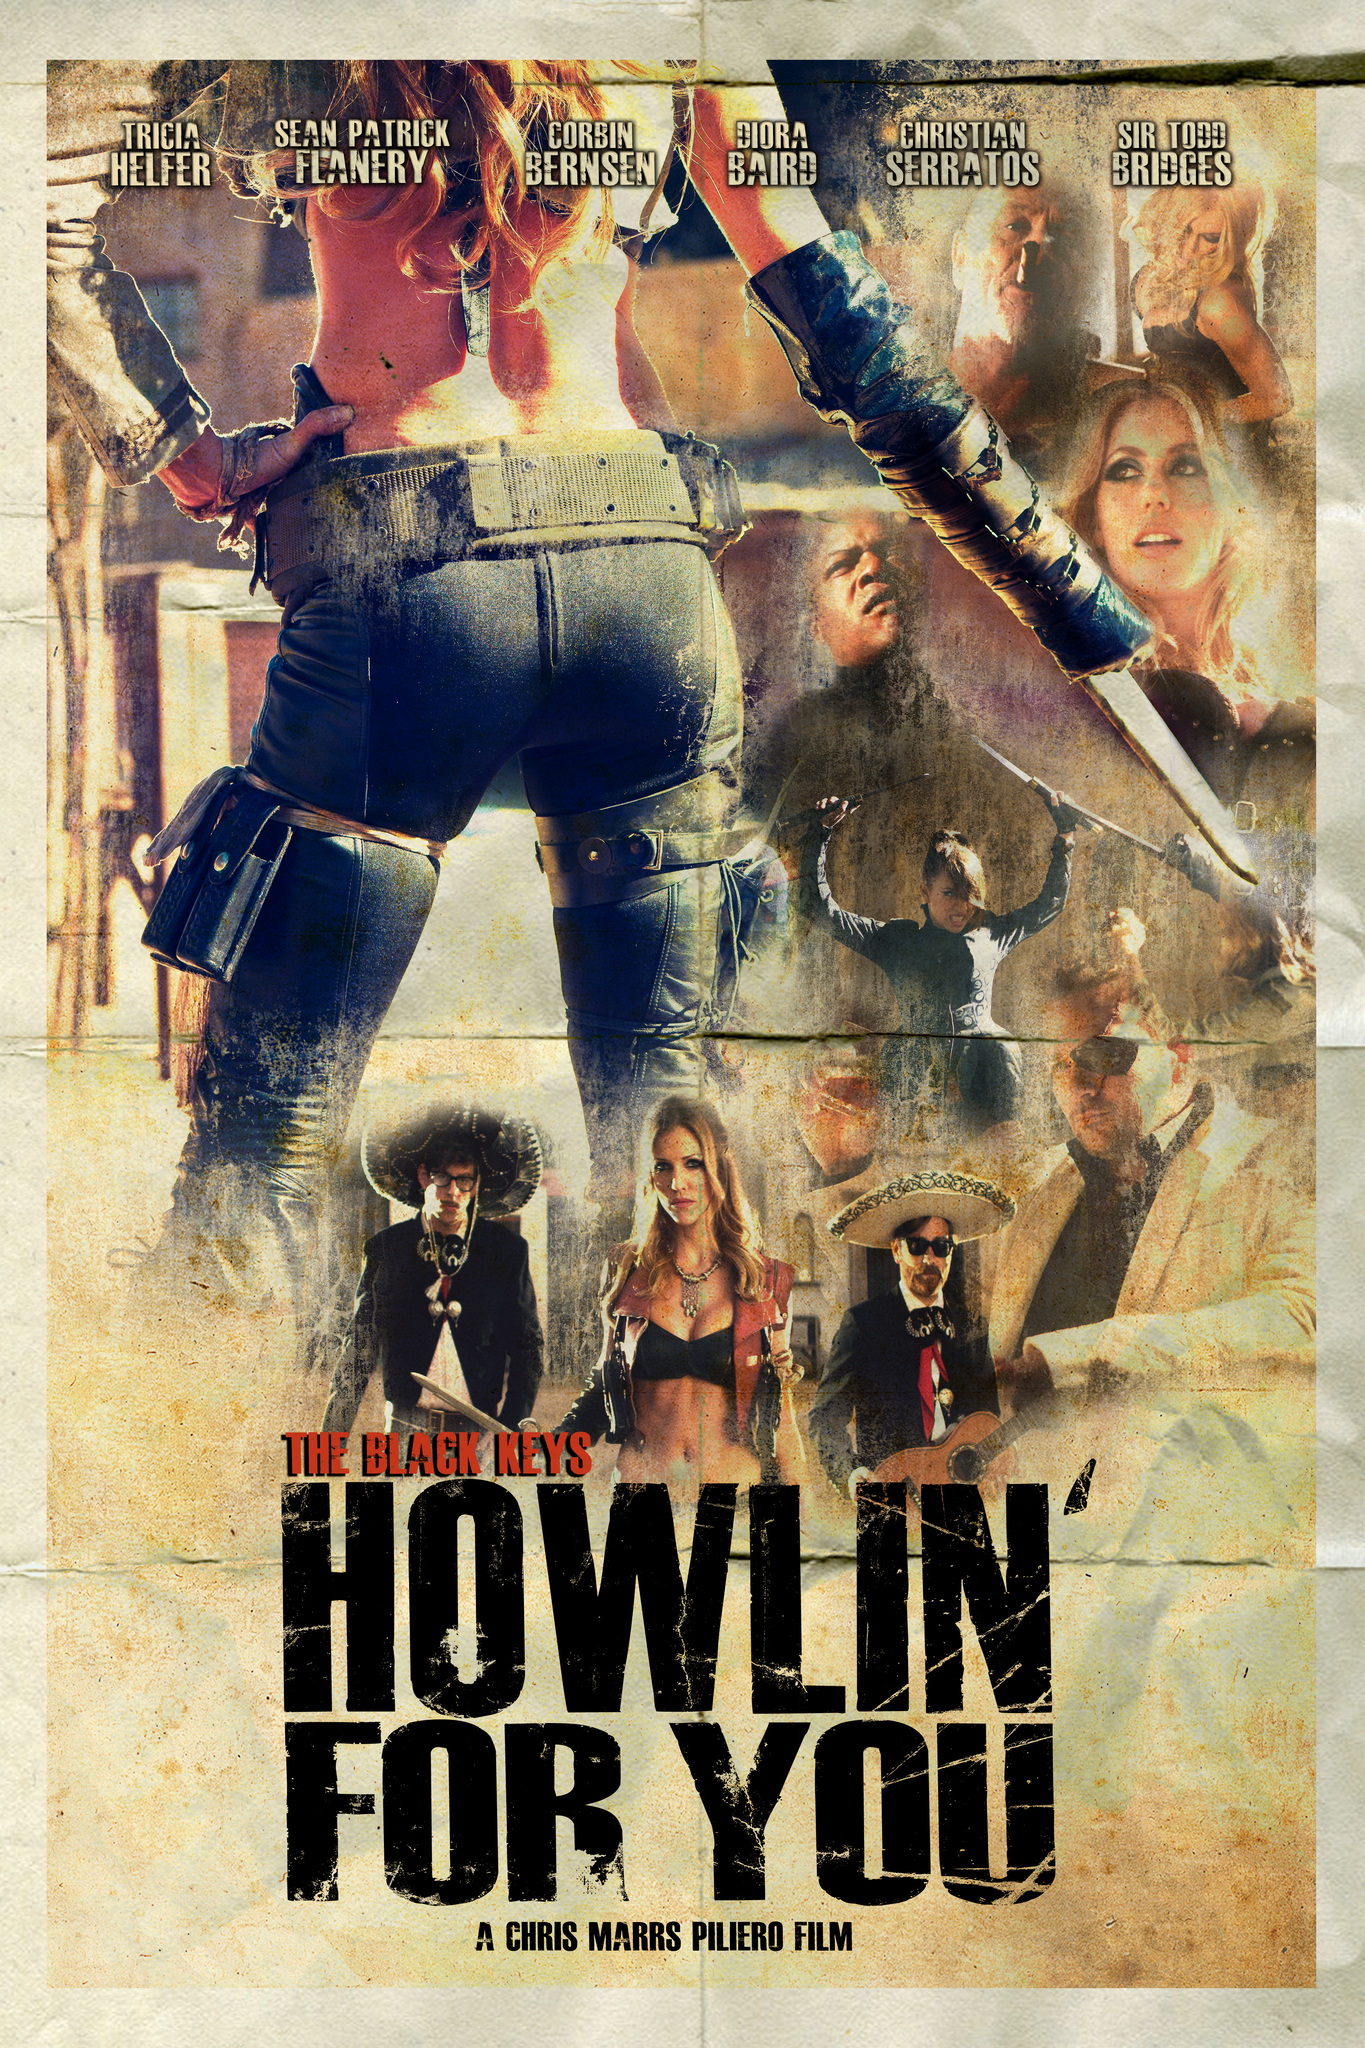 01_Howlin_For_You.jpg - Howlin' For You + Webisode - Movies.